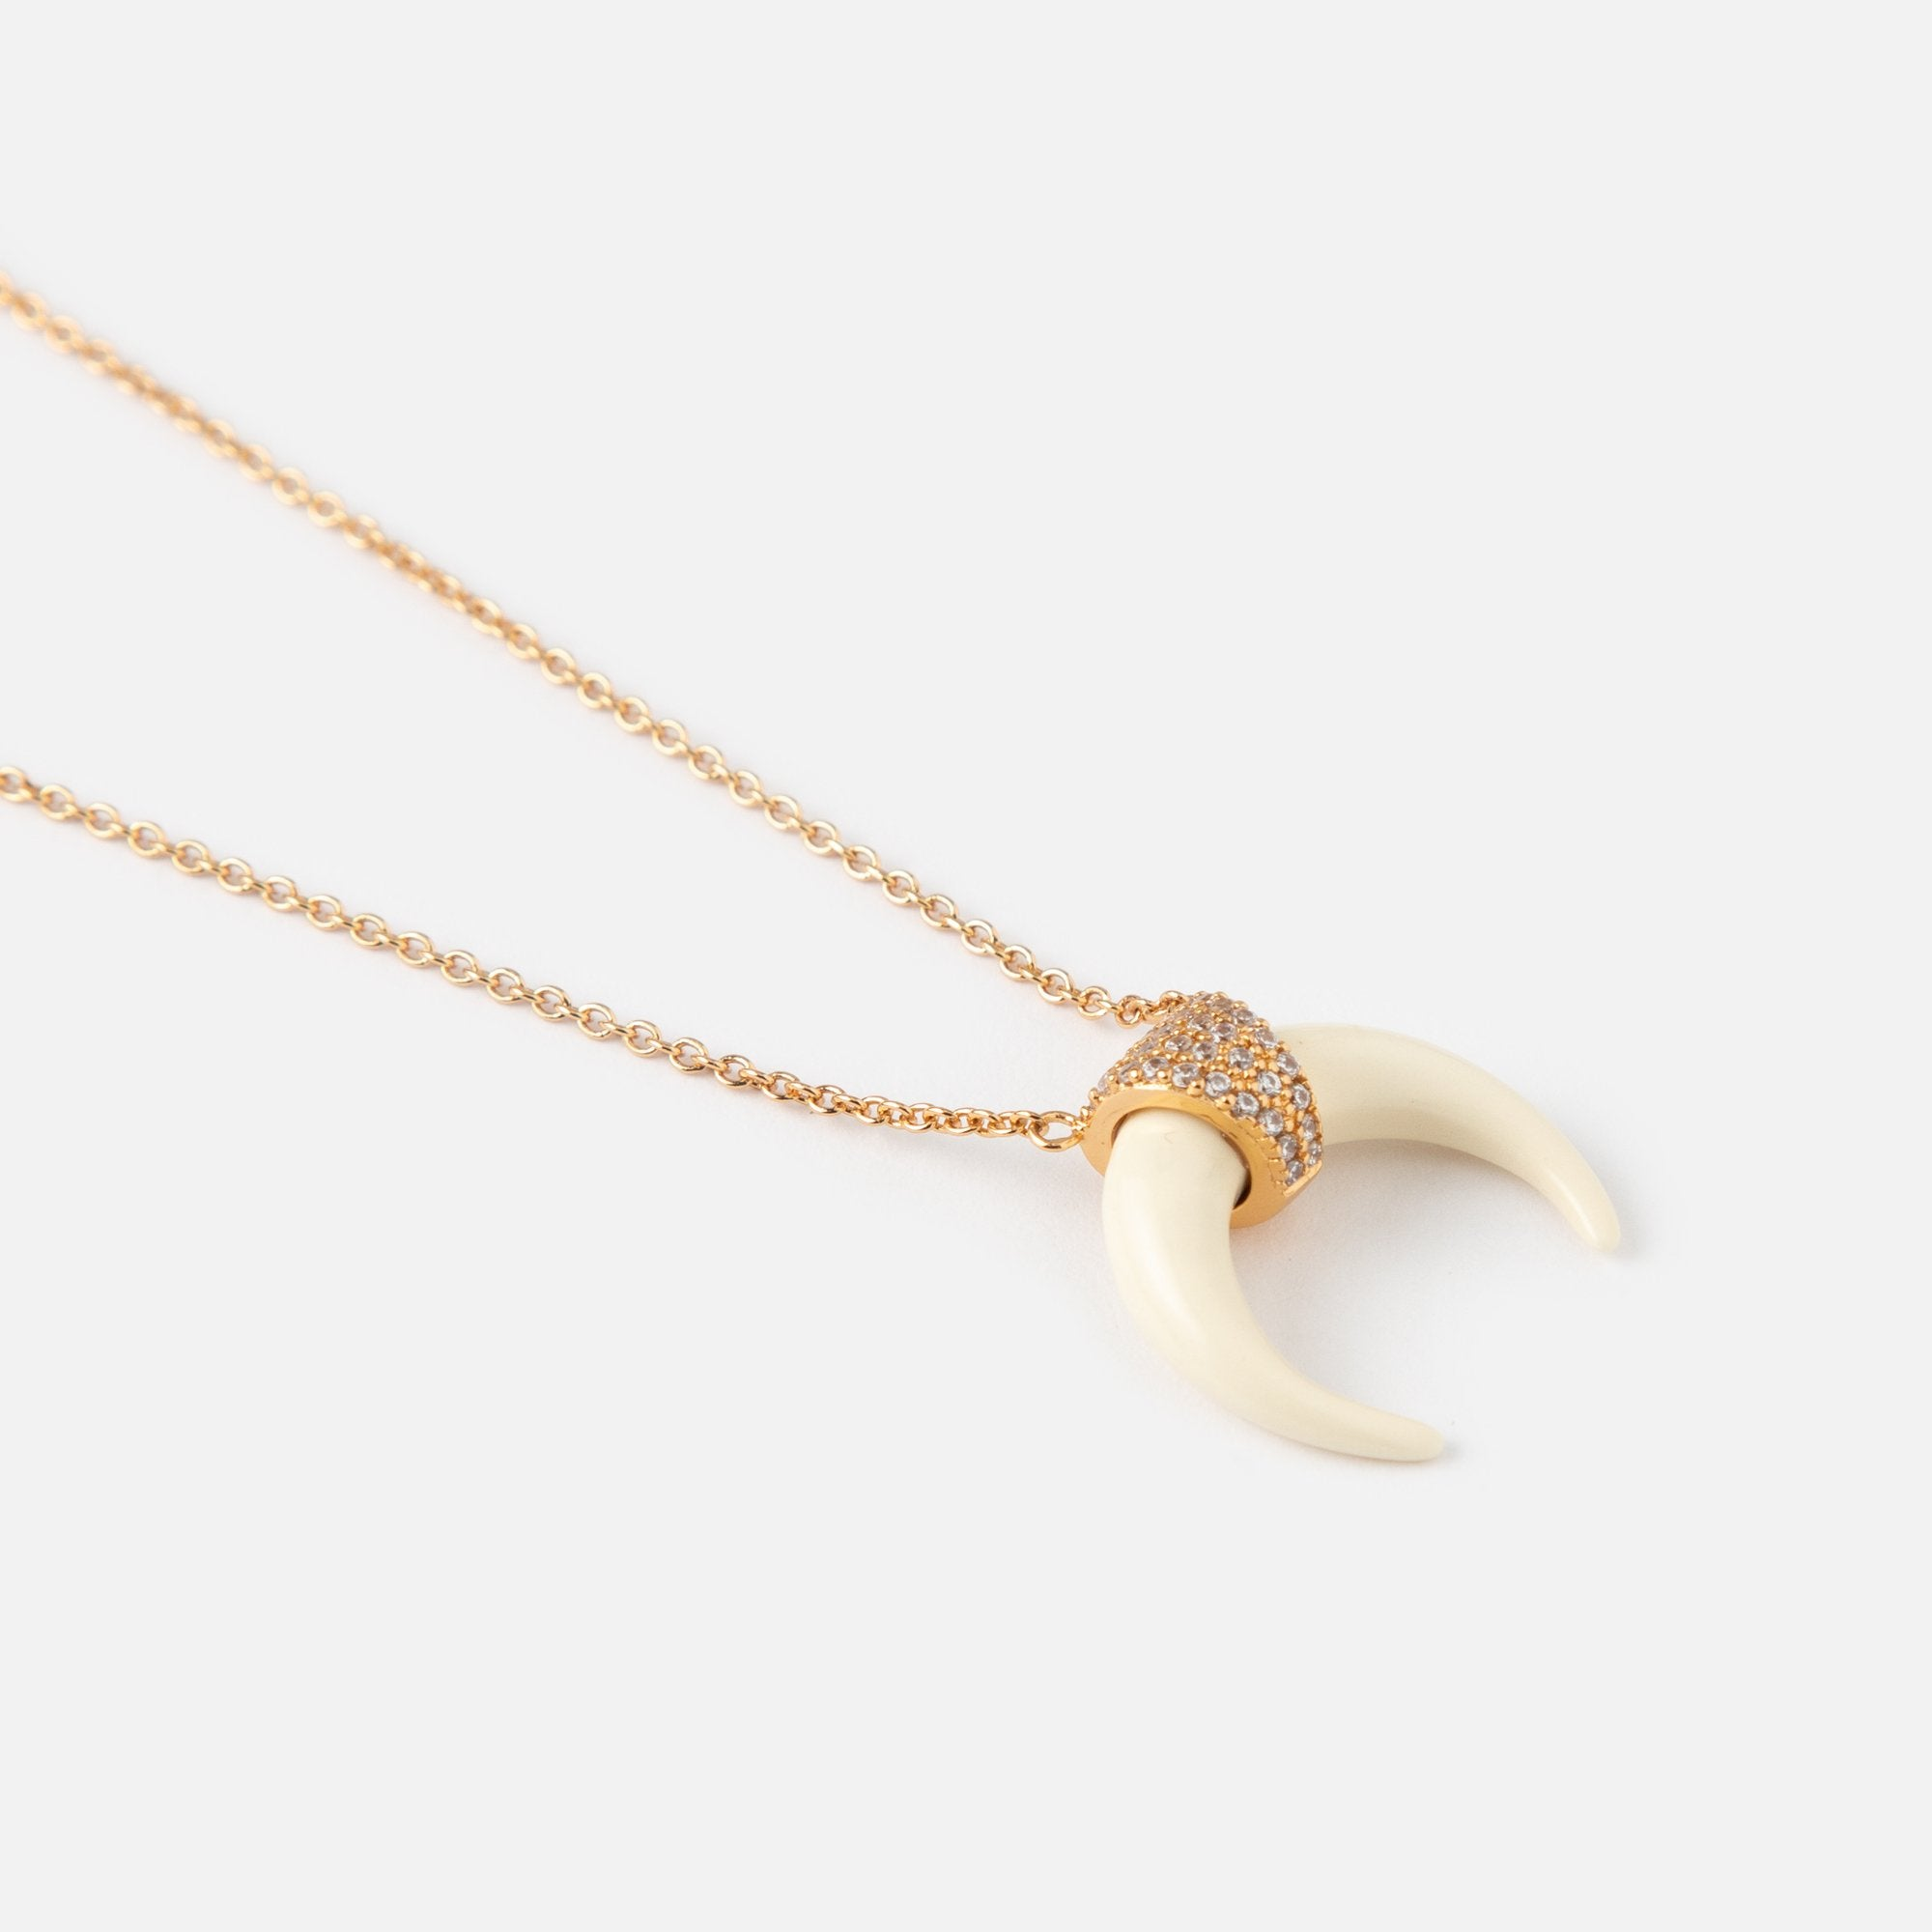 Luxe Horn Necklace - Ivory White